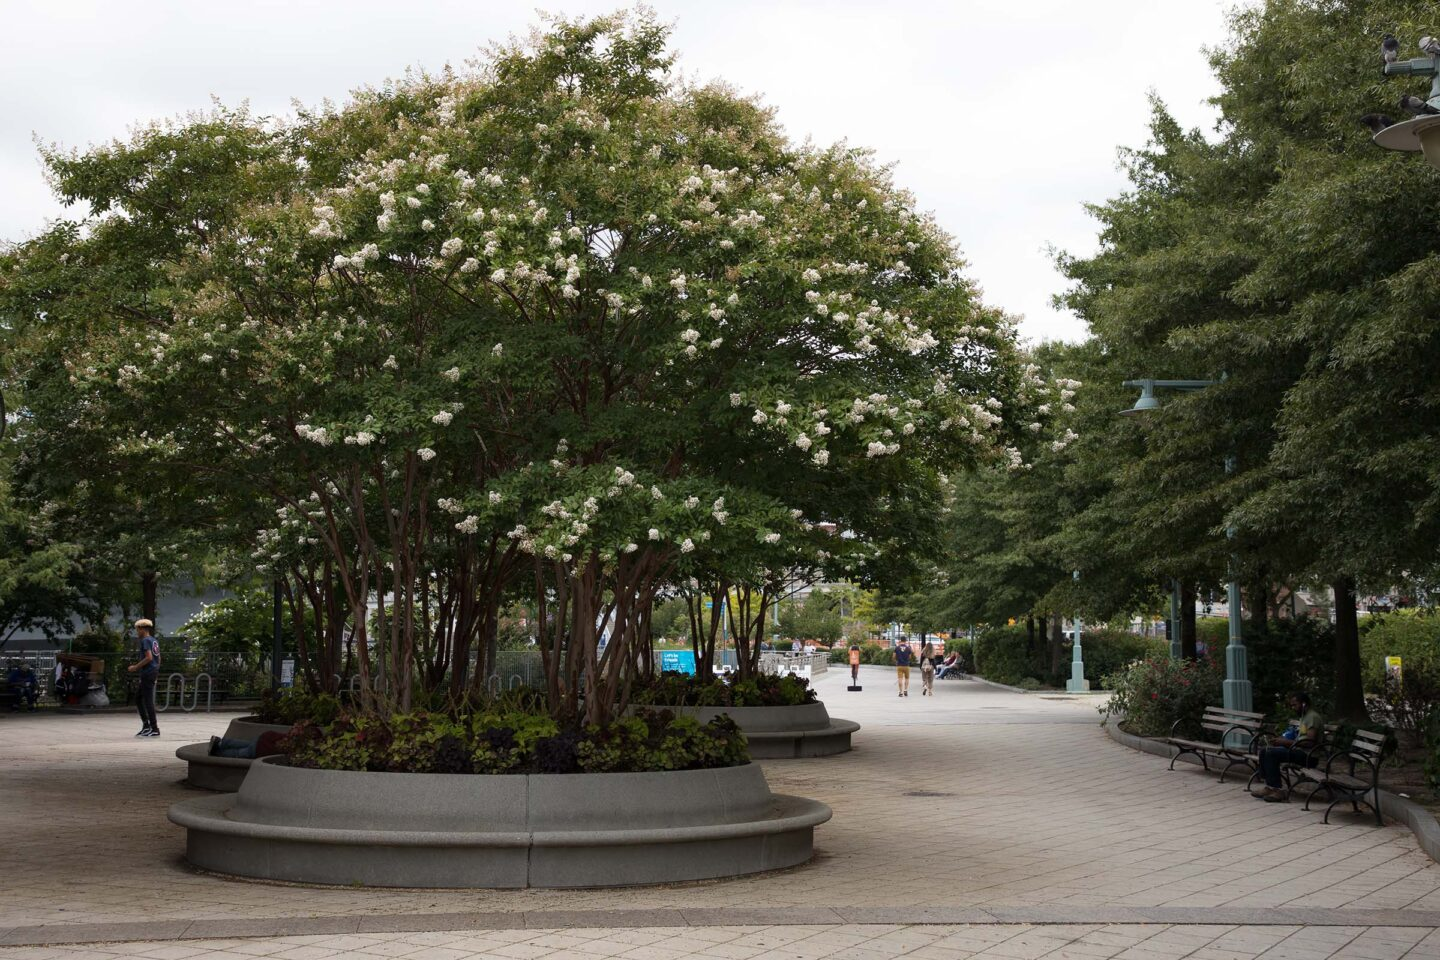 Luscious potted trees provide shade for Park Visitors